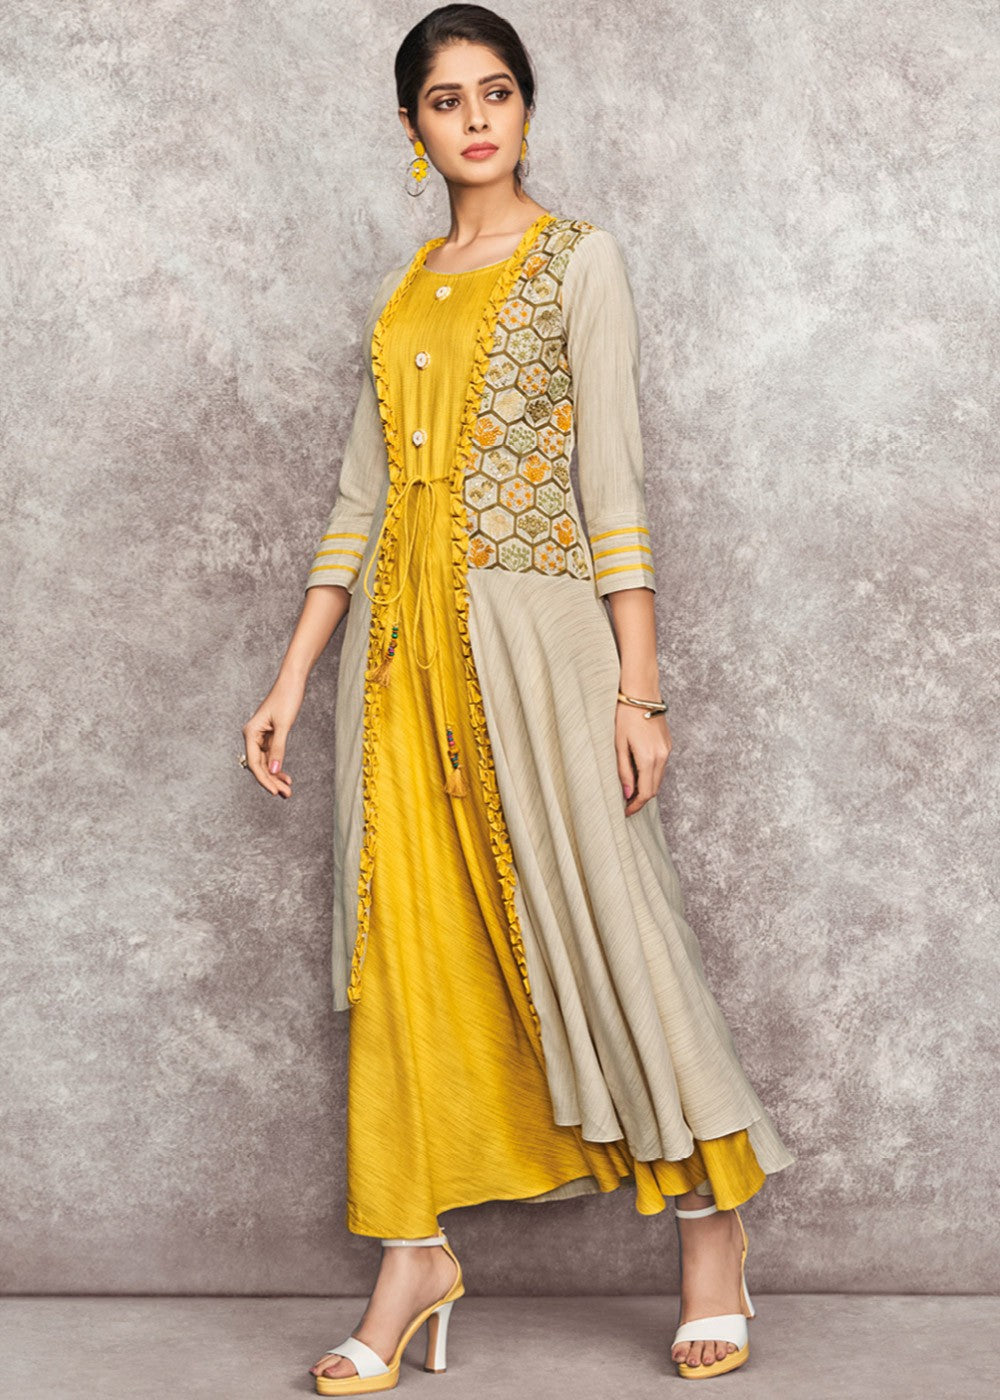 Yellow Flared Readymade Dress With Jacket